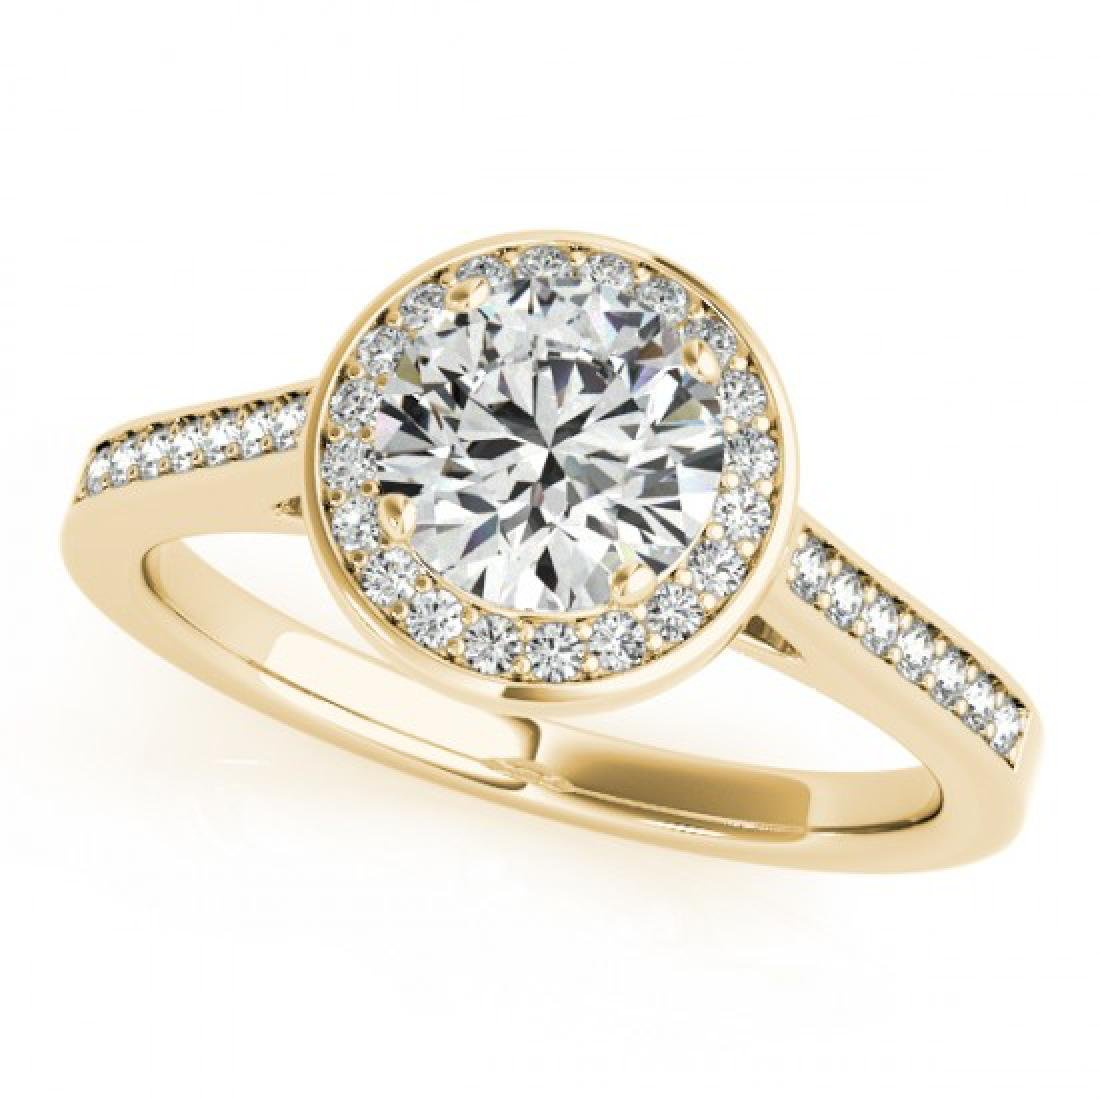 1.33 CTW Certified VS/SI Diamond Solitaire Halo Ring